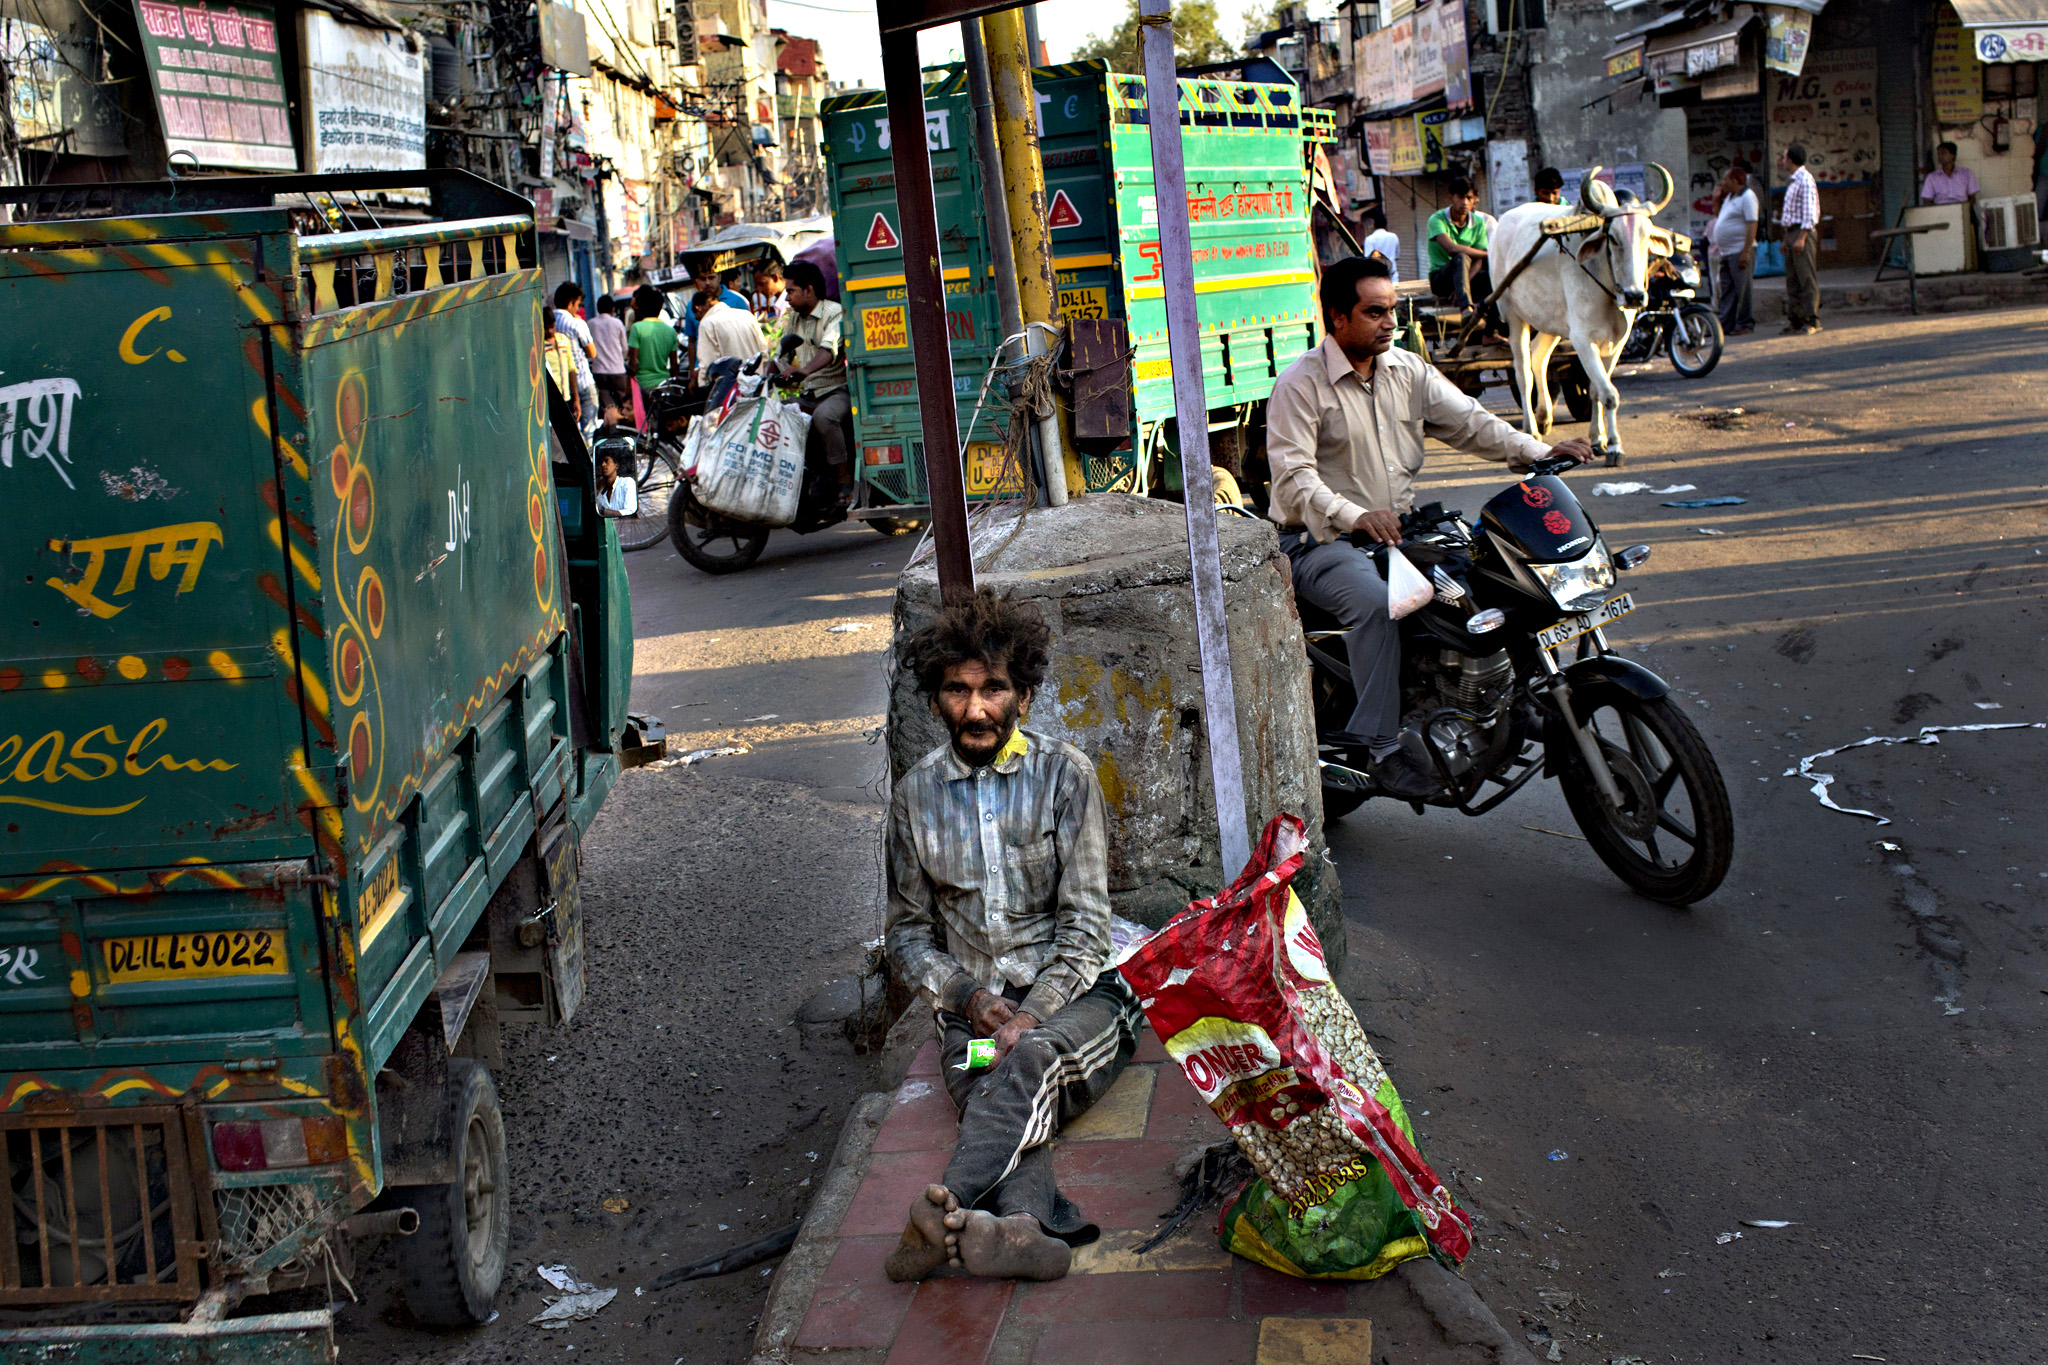 A homeless Indian man sits at a traffic intersection in the morning in New Delhi, India, Wednesday, Sept. 30, 2015. Hundreds of millions of Indians still live on less than $2 a day. The United Nations global goals for sustainable development in the next fifteen years, seeks to end poverty in all its forms everywhere